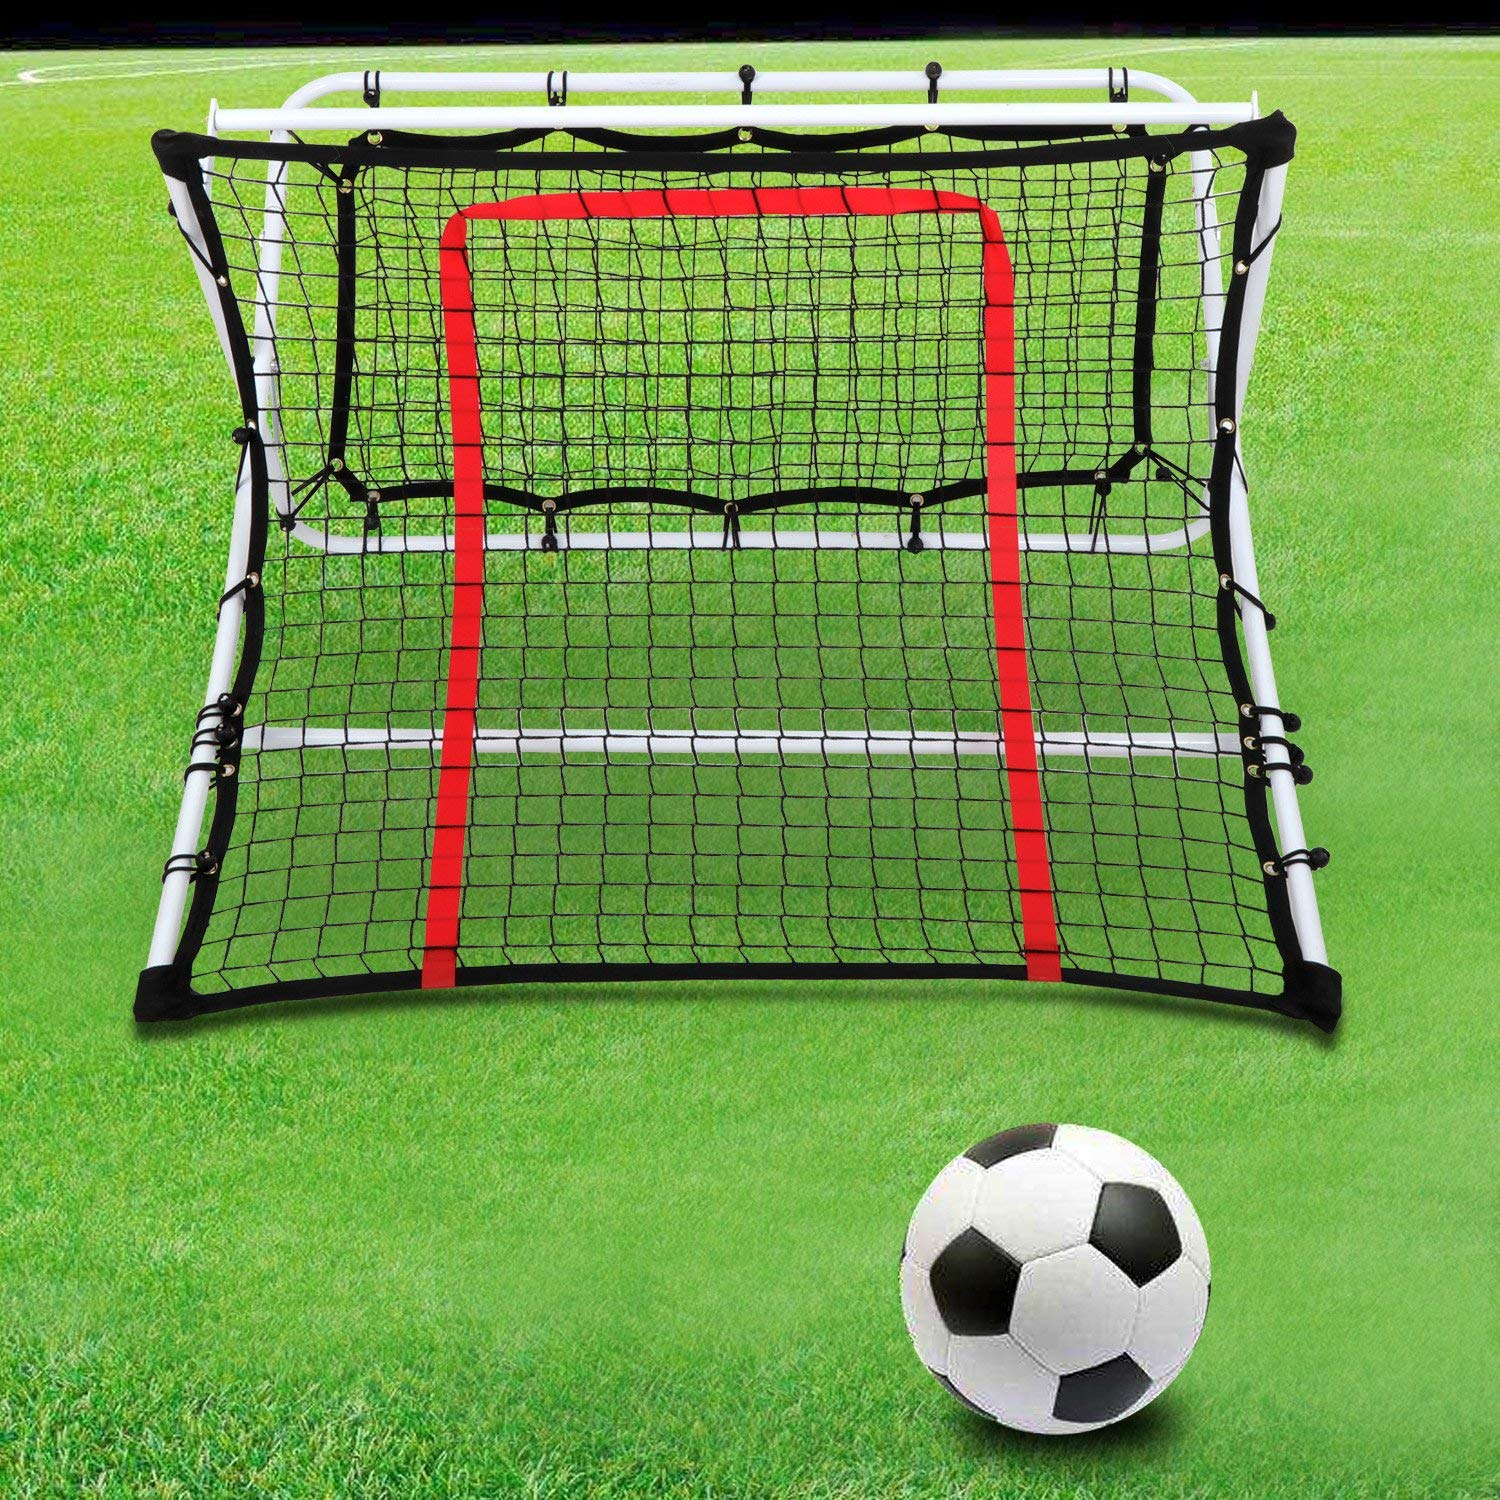 a0ad651af Get Quotations · Smartxchoices 2in1 X-Ramp Soccer Trainer Rebounder Net  Portable Soccer Goal Training Net Kids Adjustable